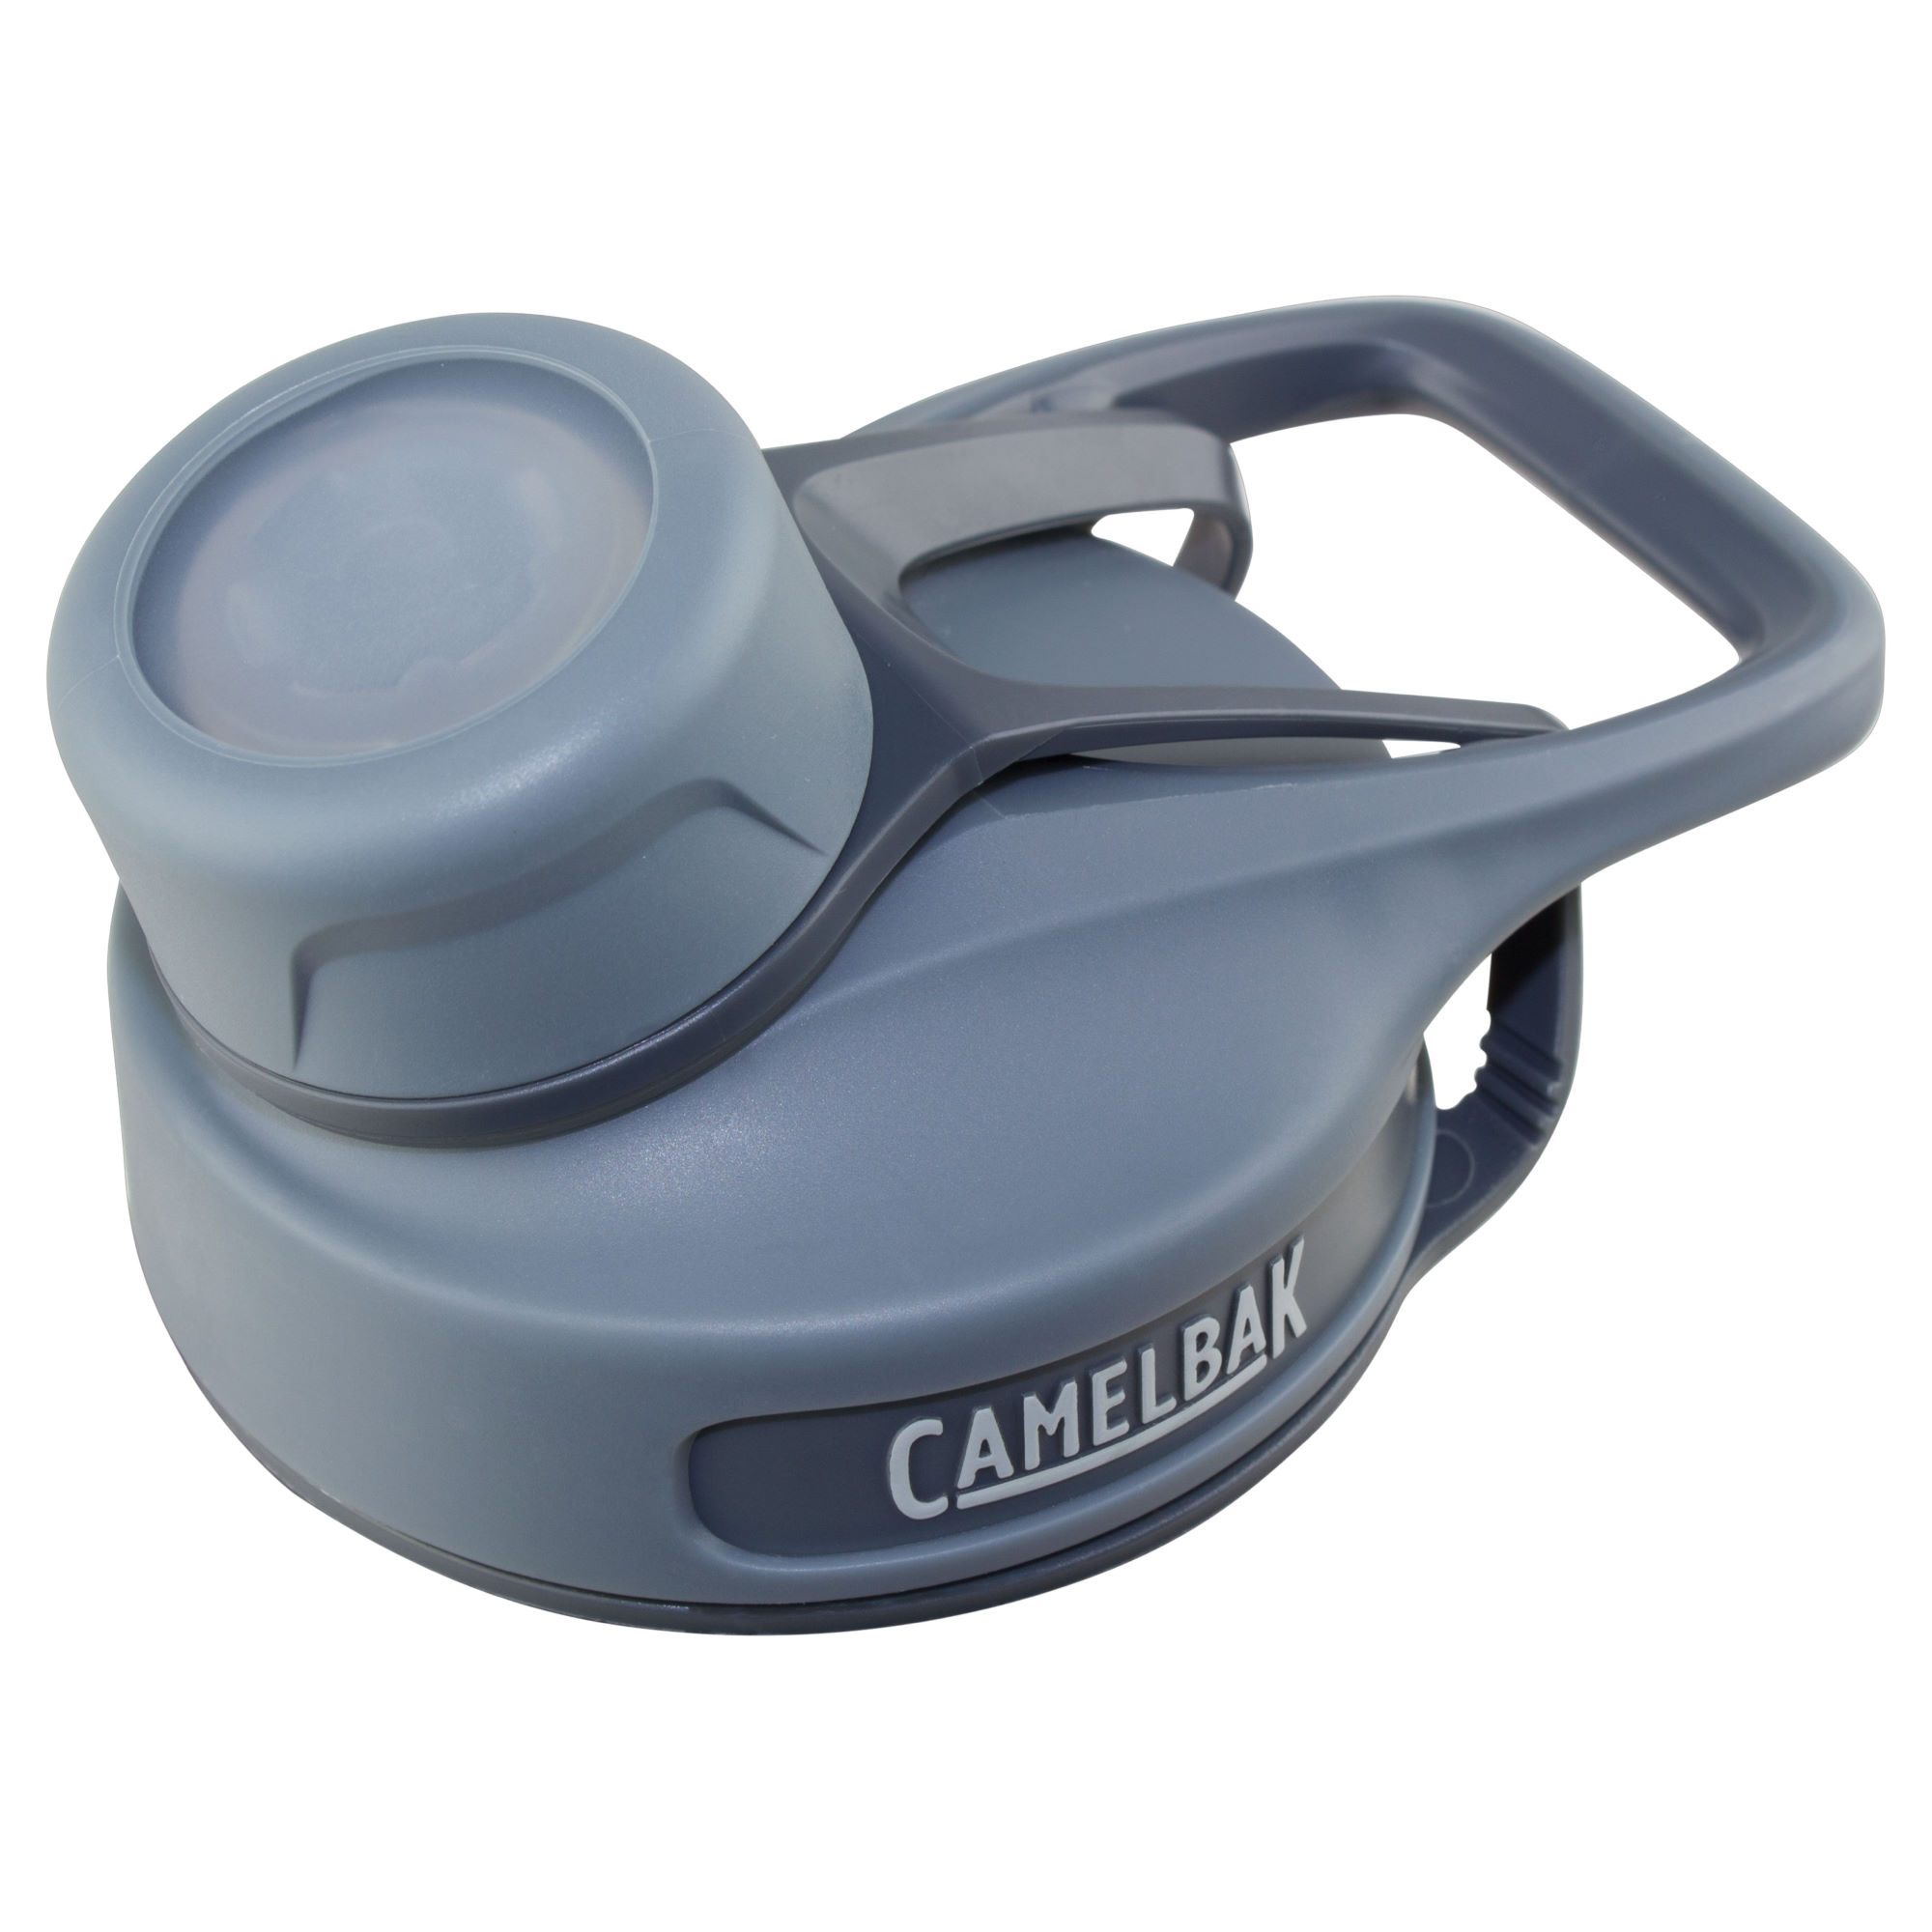 Wiggle Cycle To Work Camelbak Chute Replacement Cap